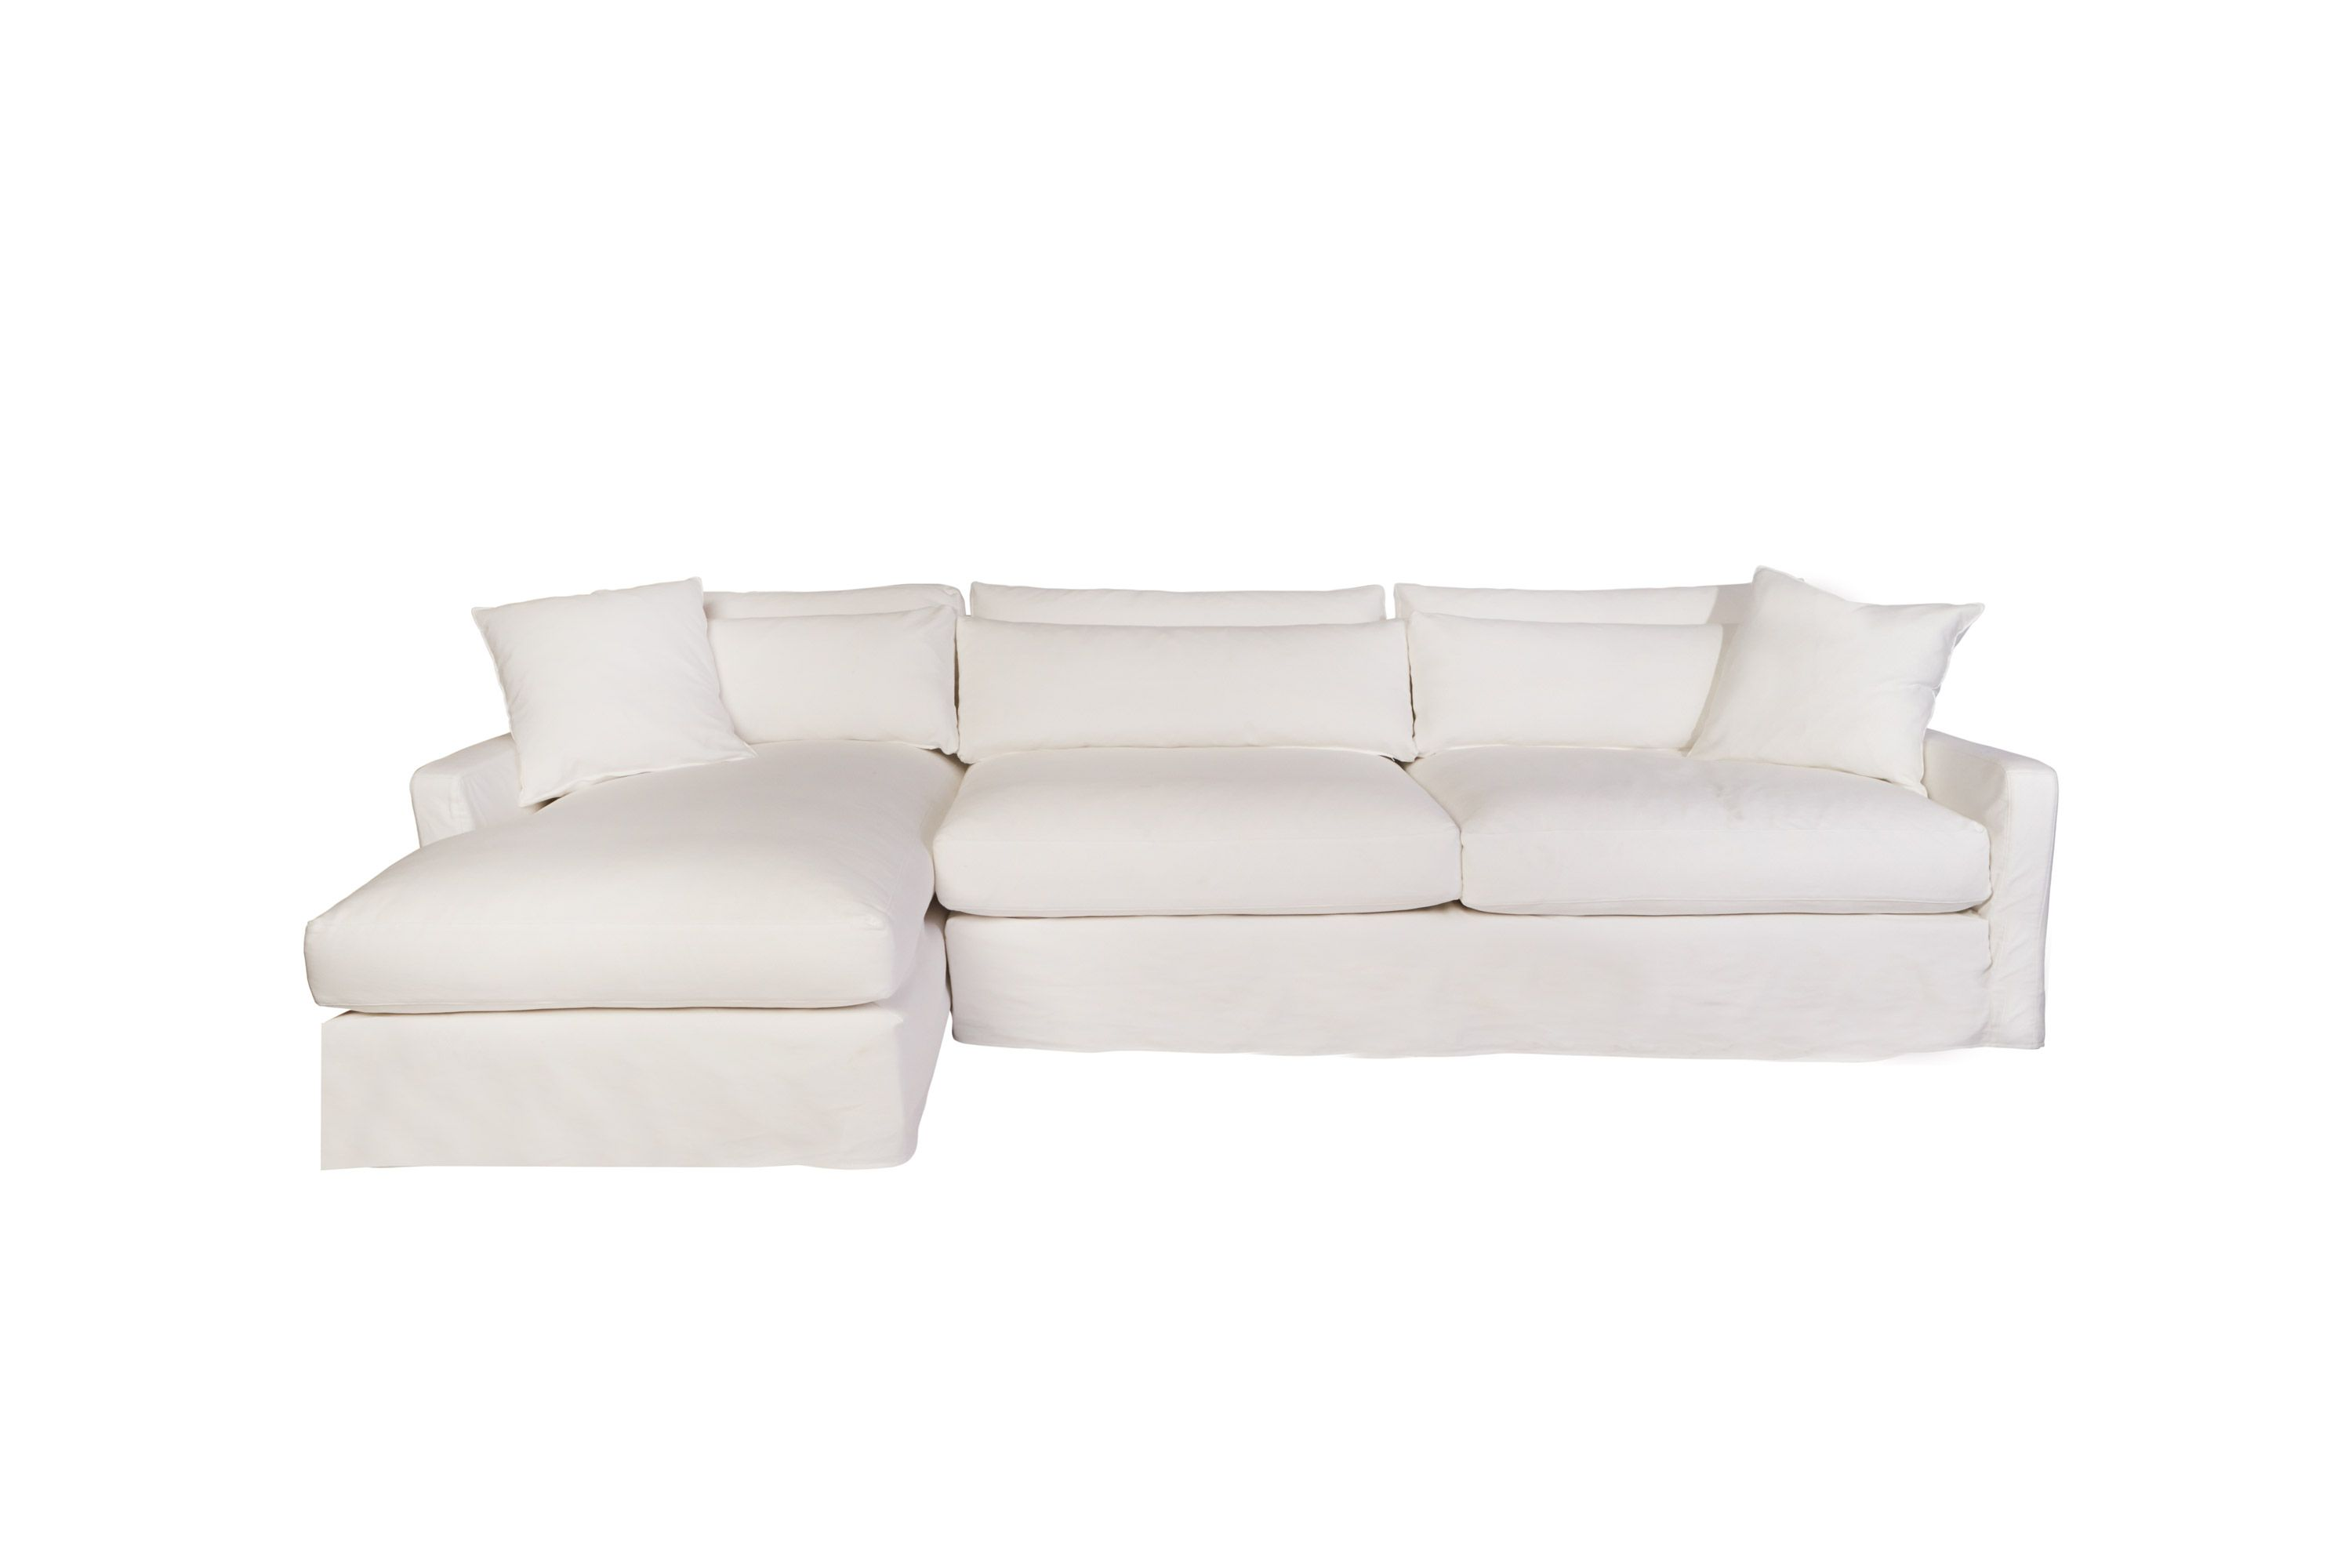 Cisco Brothers Malibu Sectional Sectional Comfortable Sofa